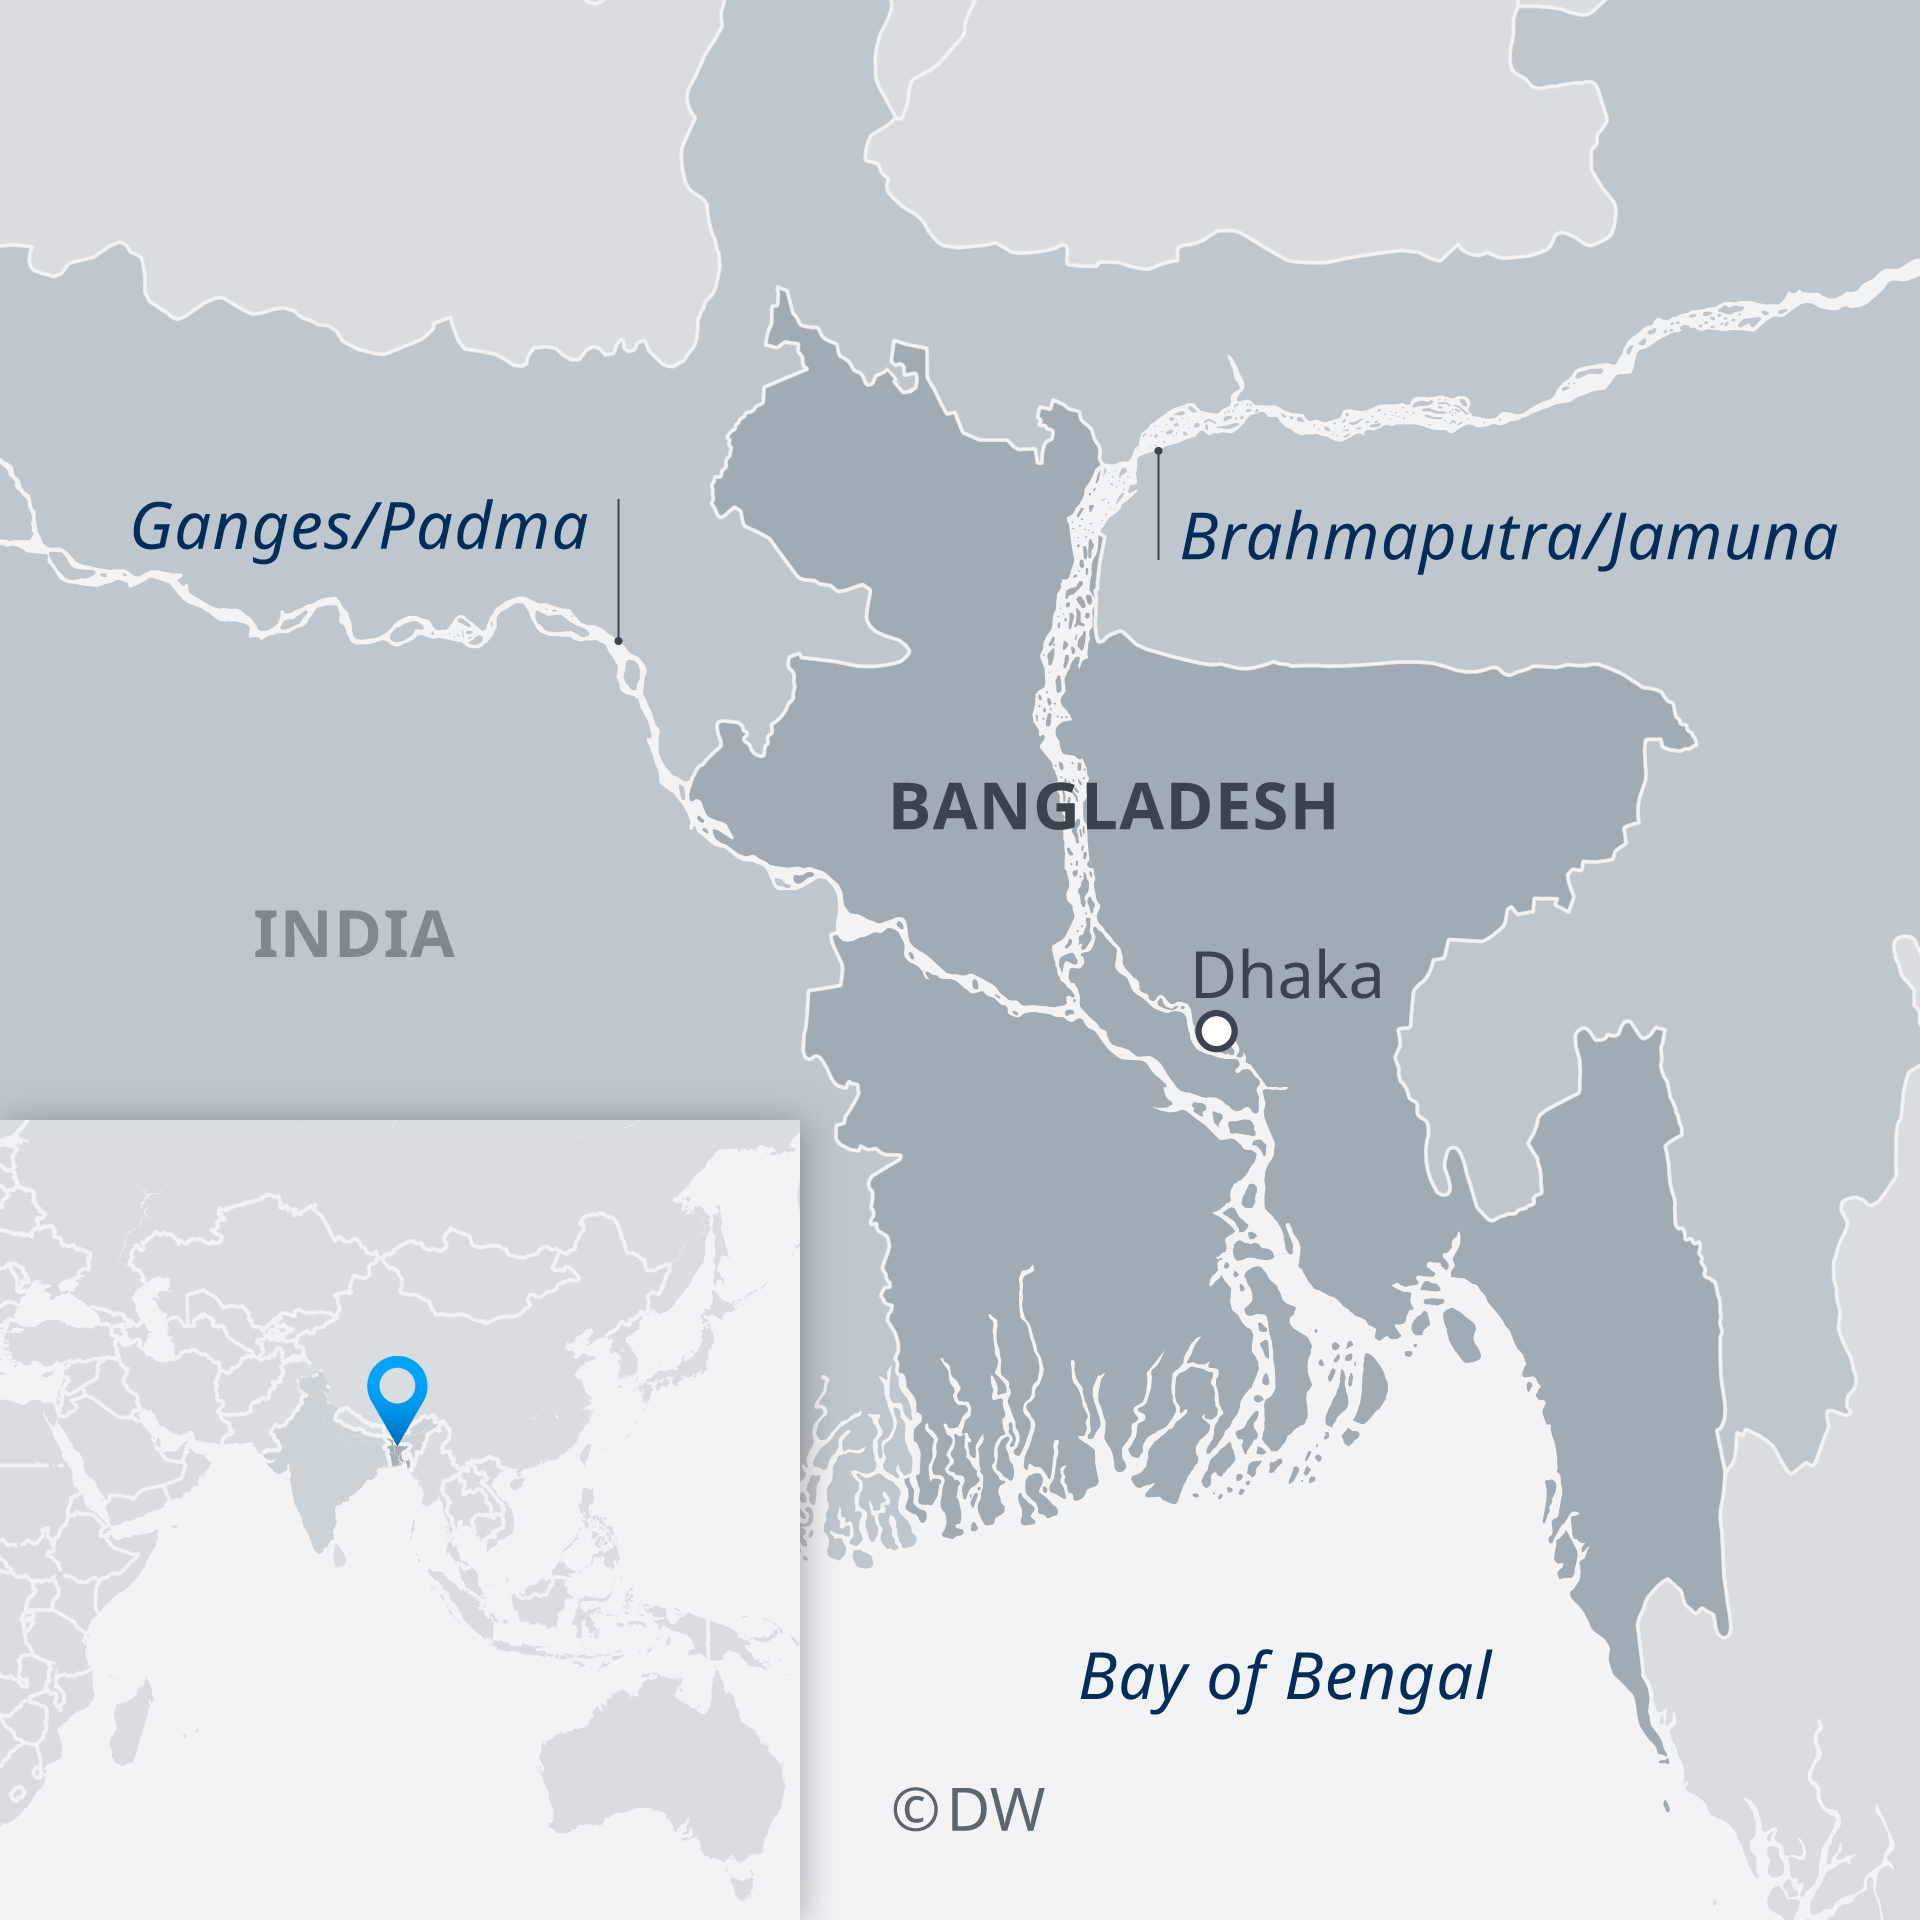 The Ganges and the Brahmaputra are two major rivers that flow from India through Bangladesh and into the Bay of Bengal